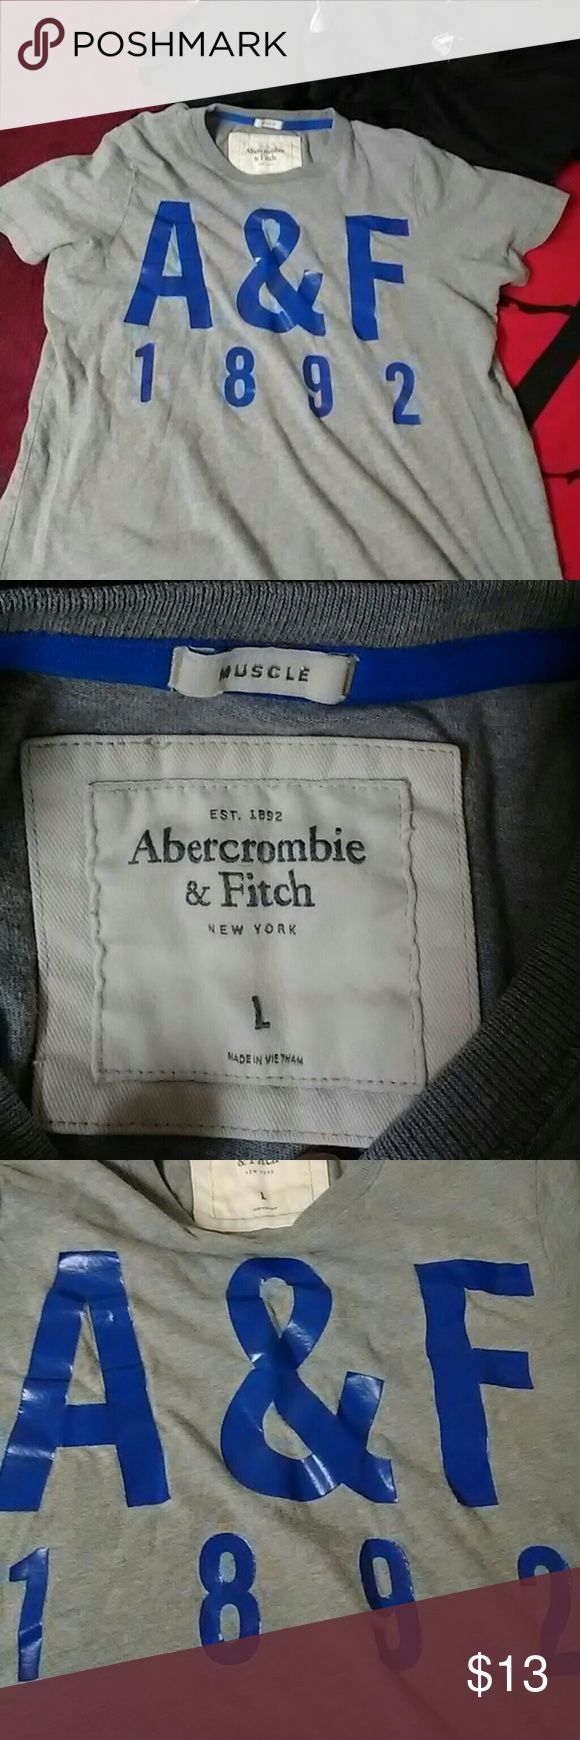 Abercrombie and Fitch T-Shirt Says large but also says muscle shirt so I marked to medium Abercrombie & Fitch Shirts Tees - Short Sleeve